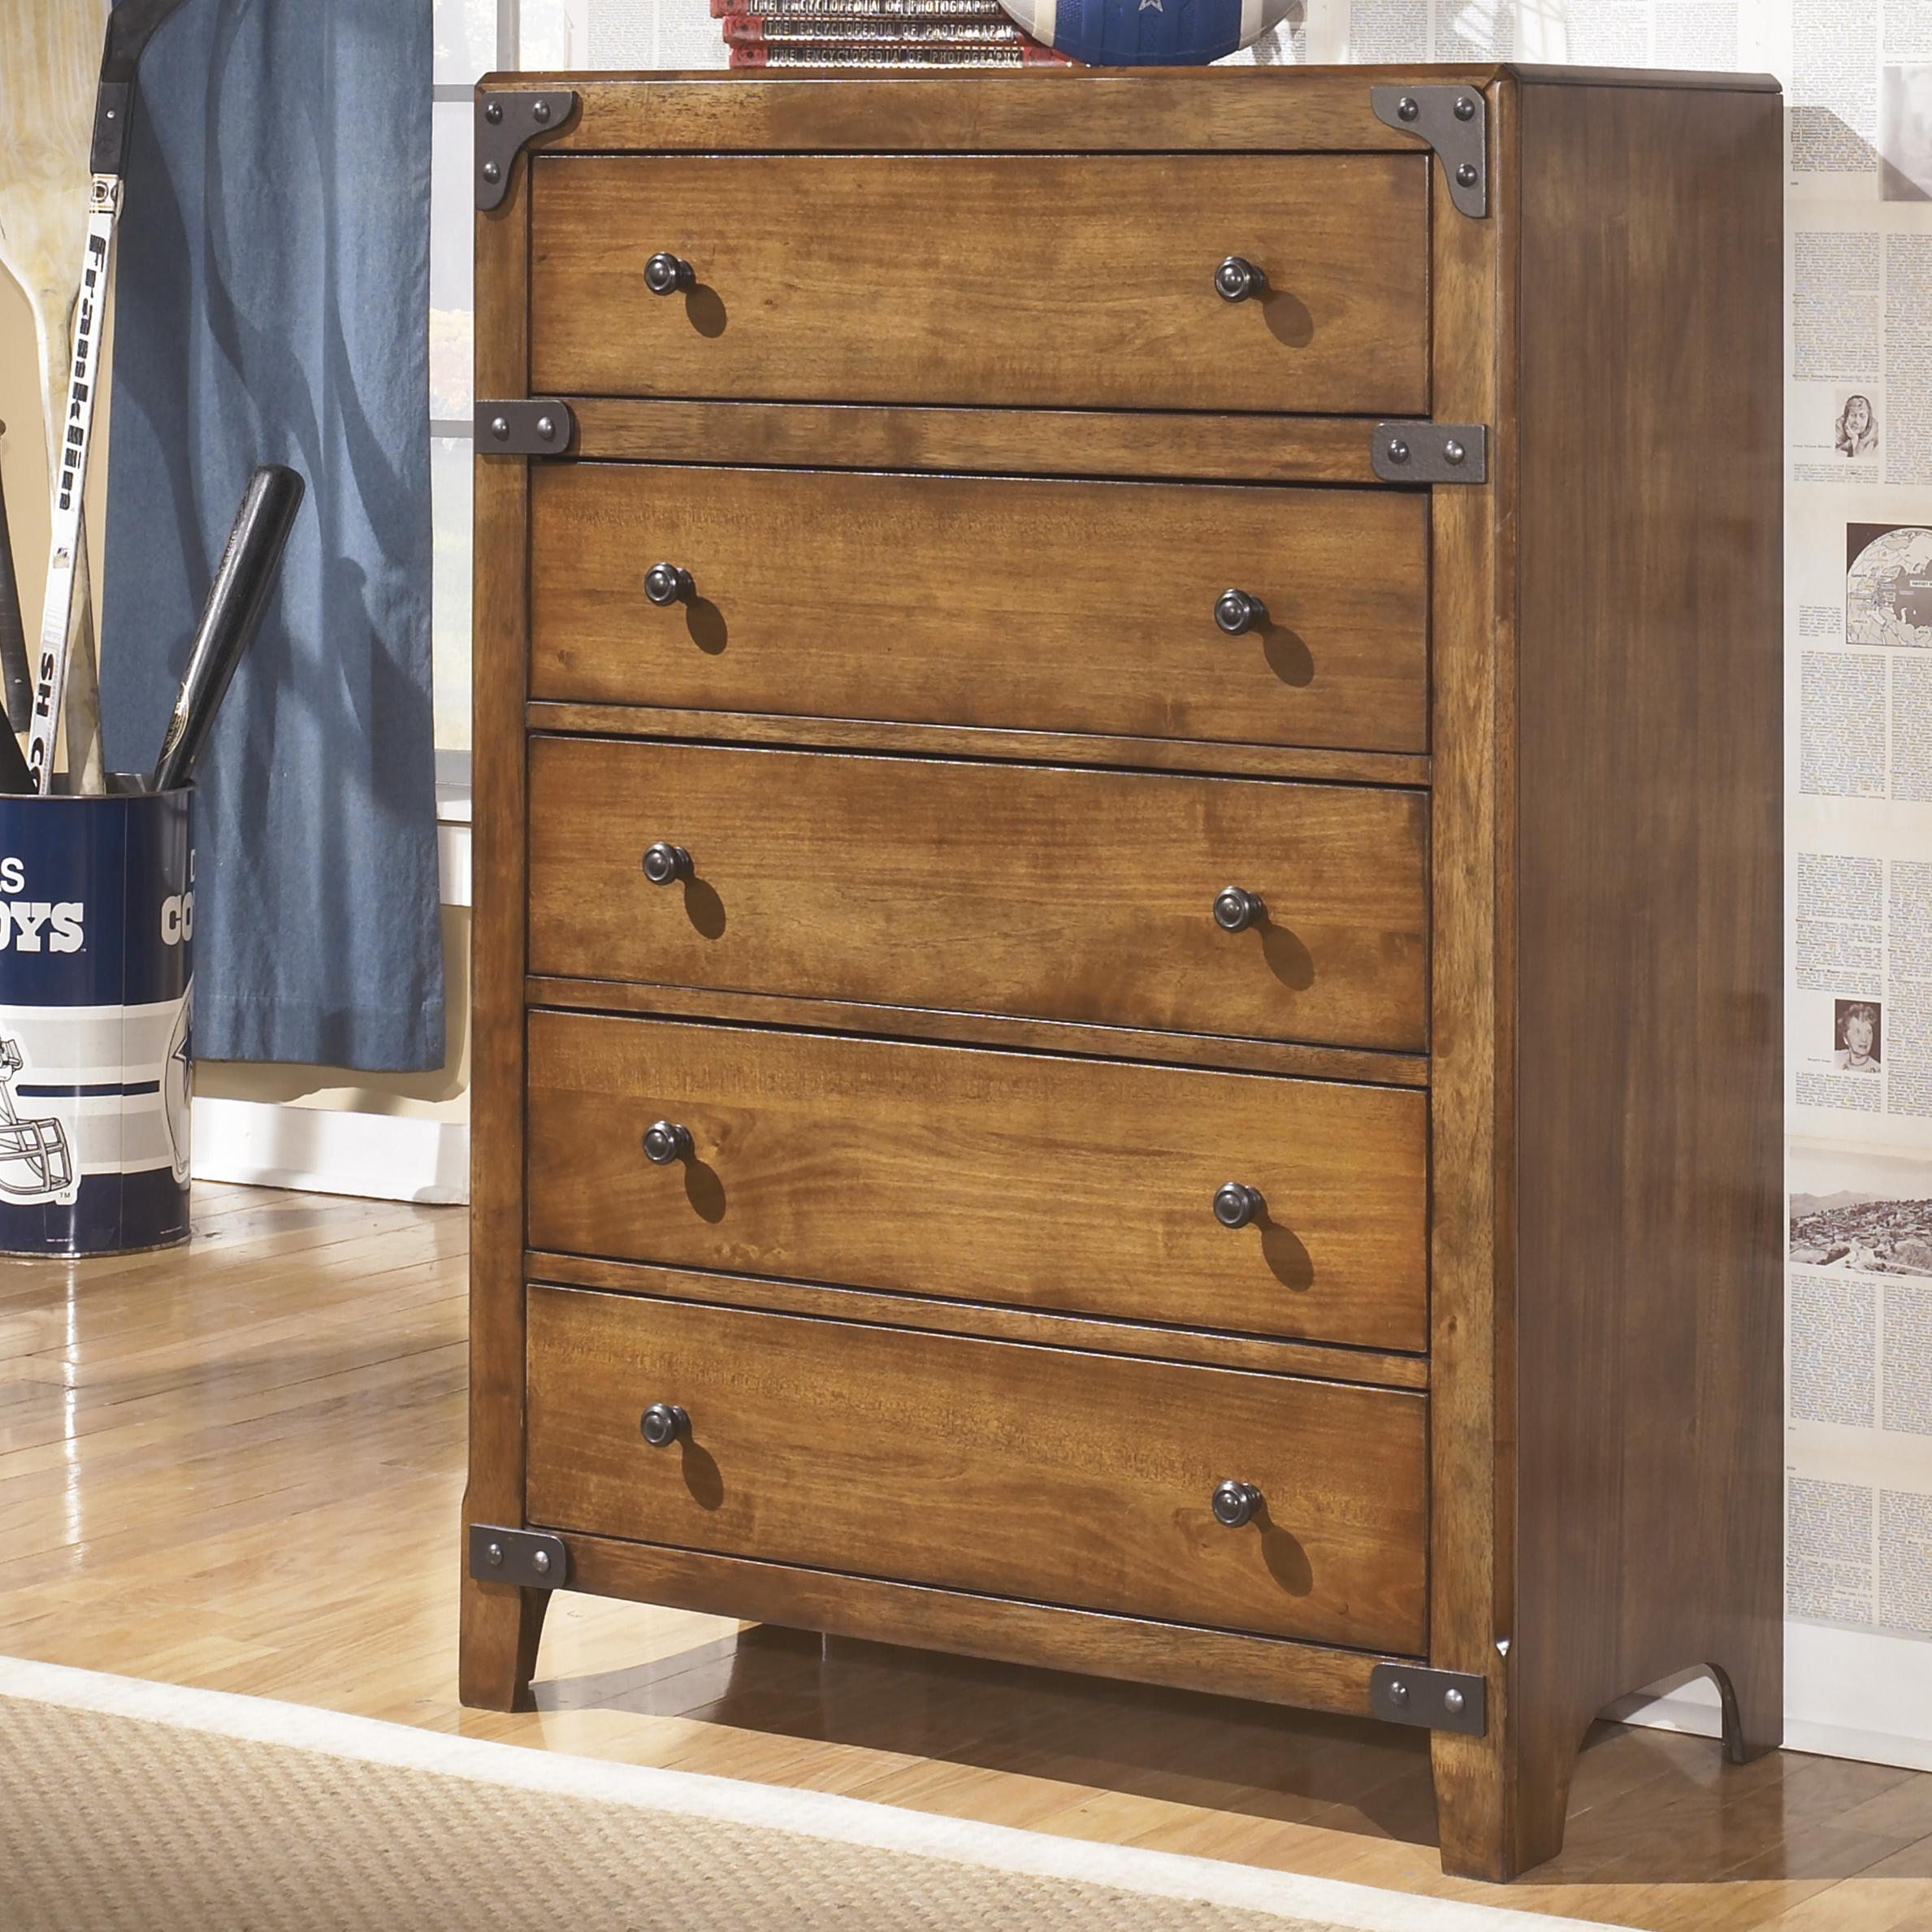 Signature Design by Ashley Delburne Chest - Item Number: B362-45